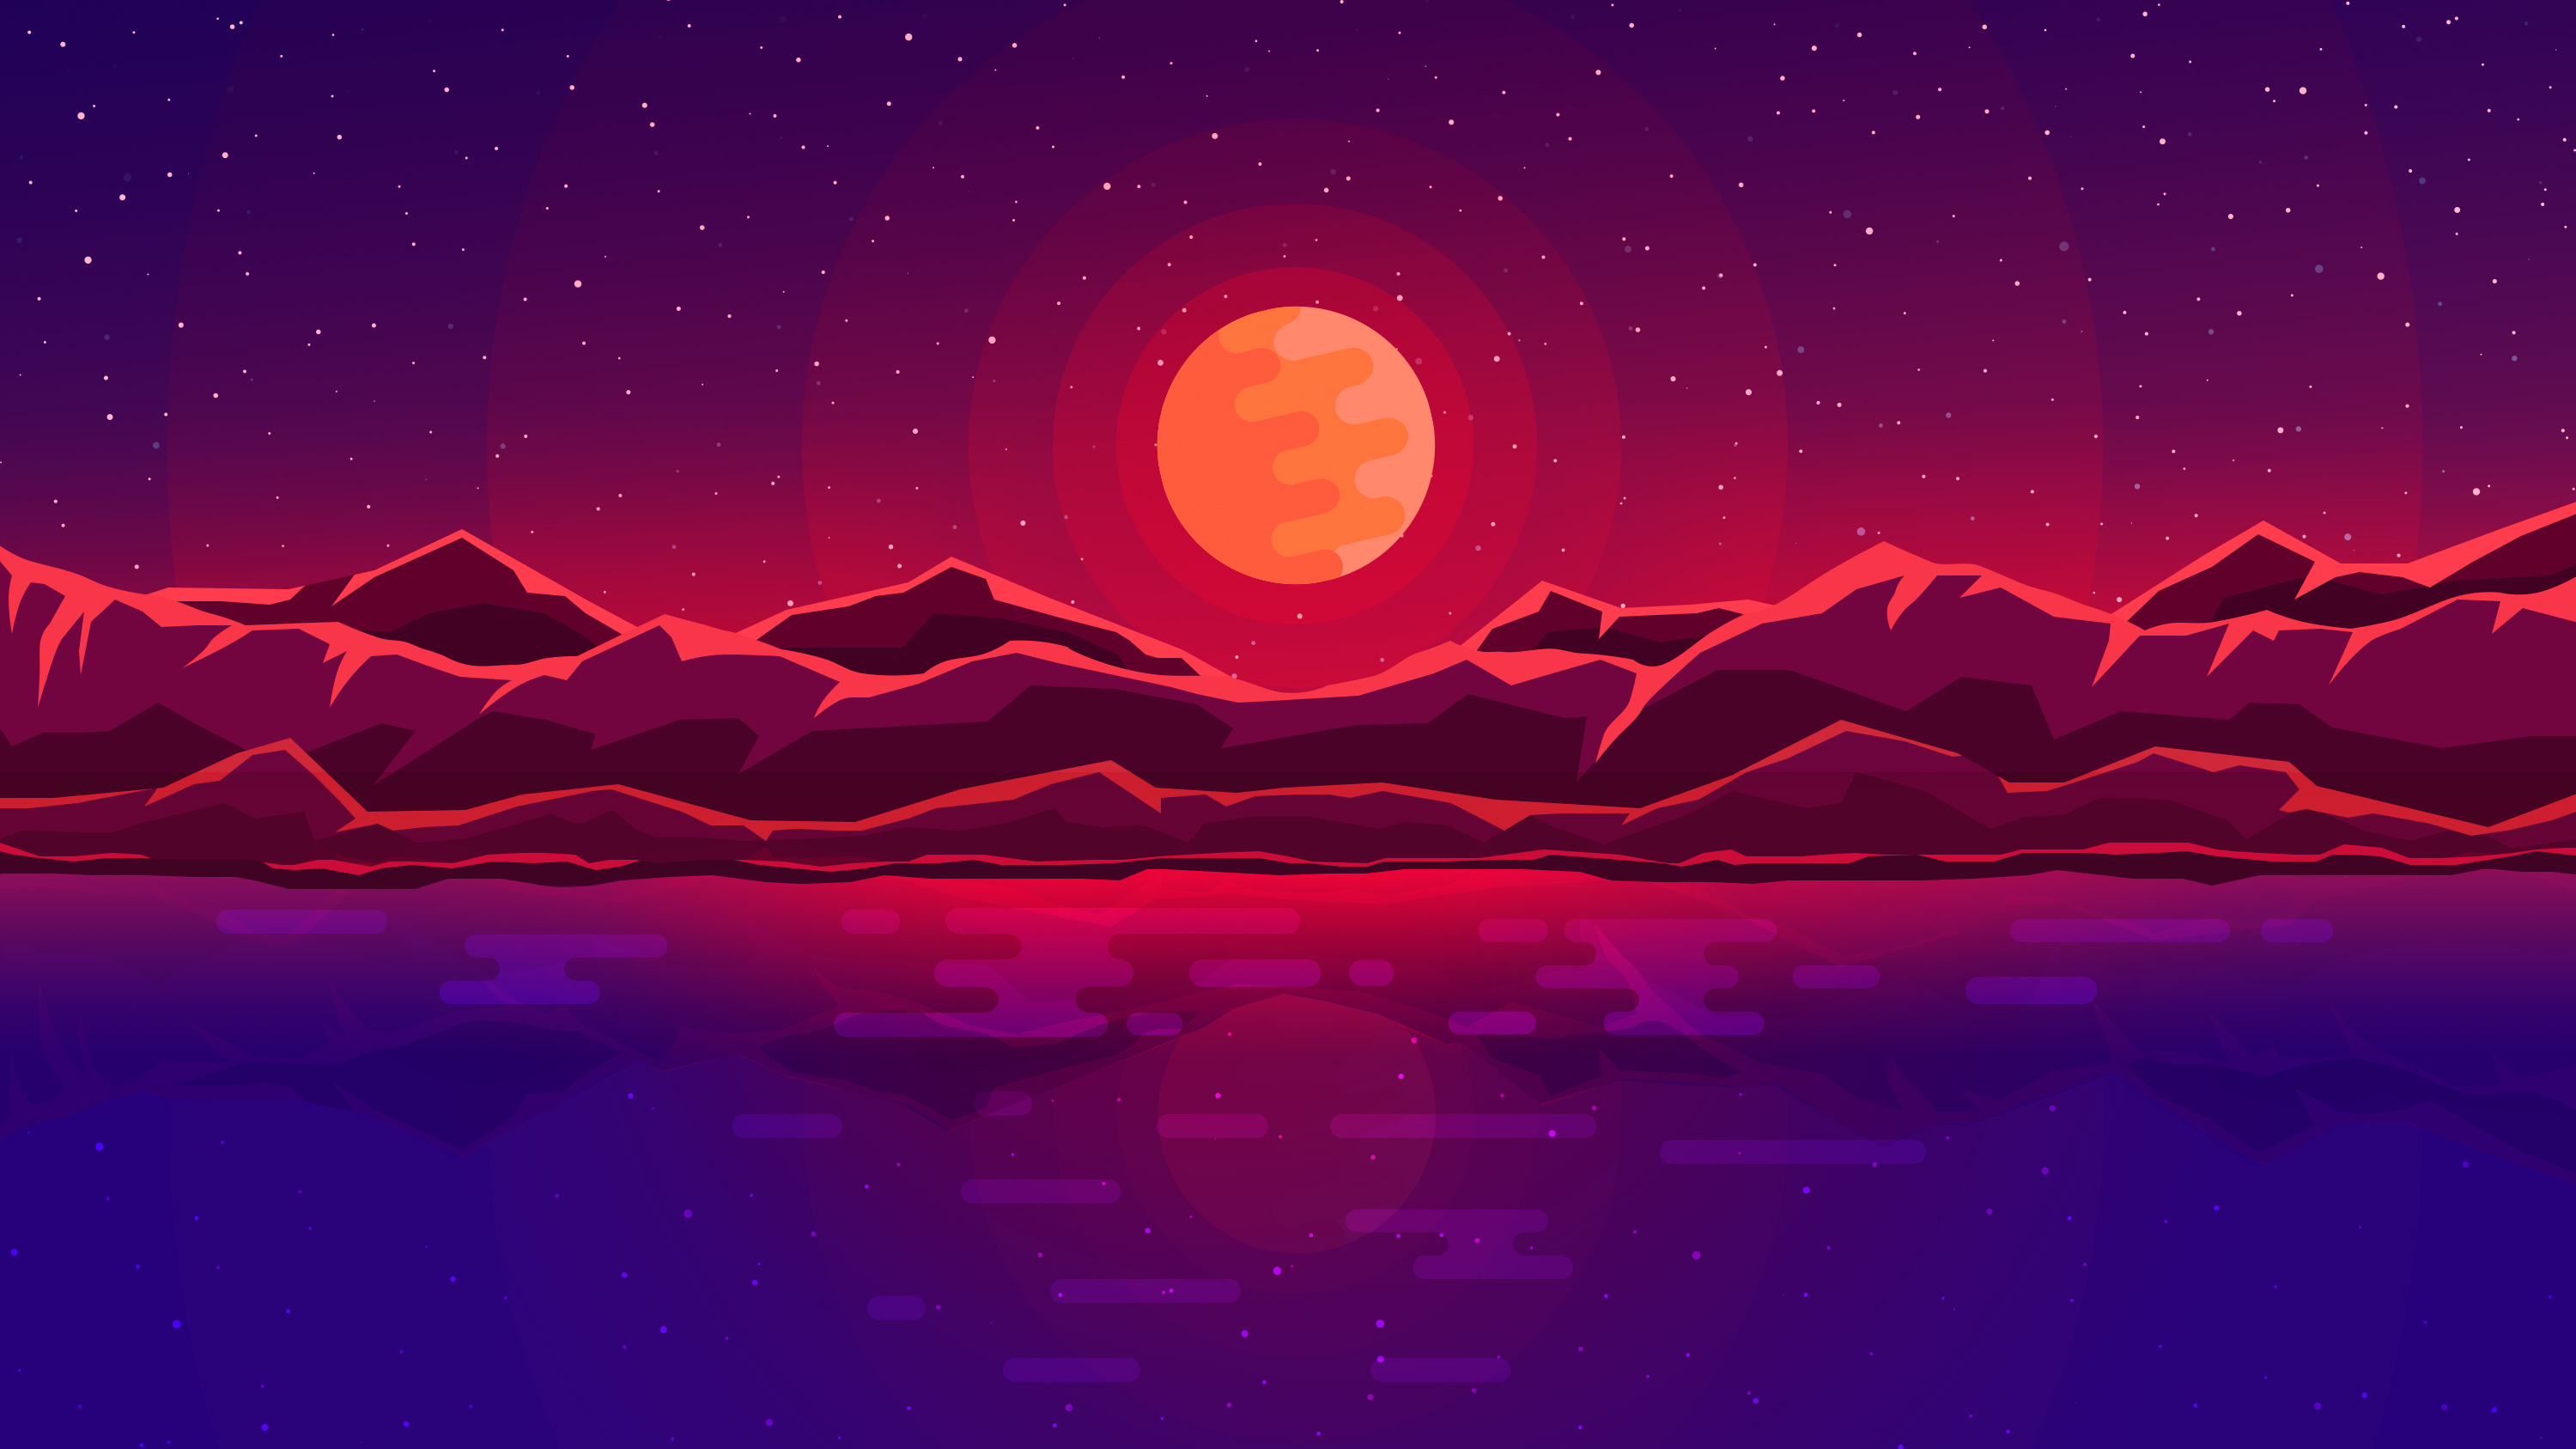 1920x1080 moon rays red space sky abstract mountains - Abstract space wallpaper ...